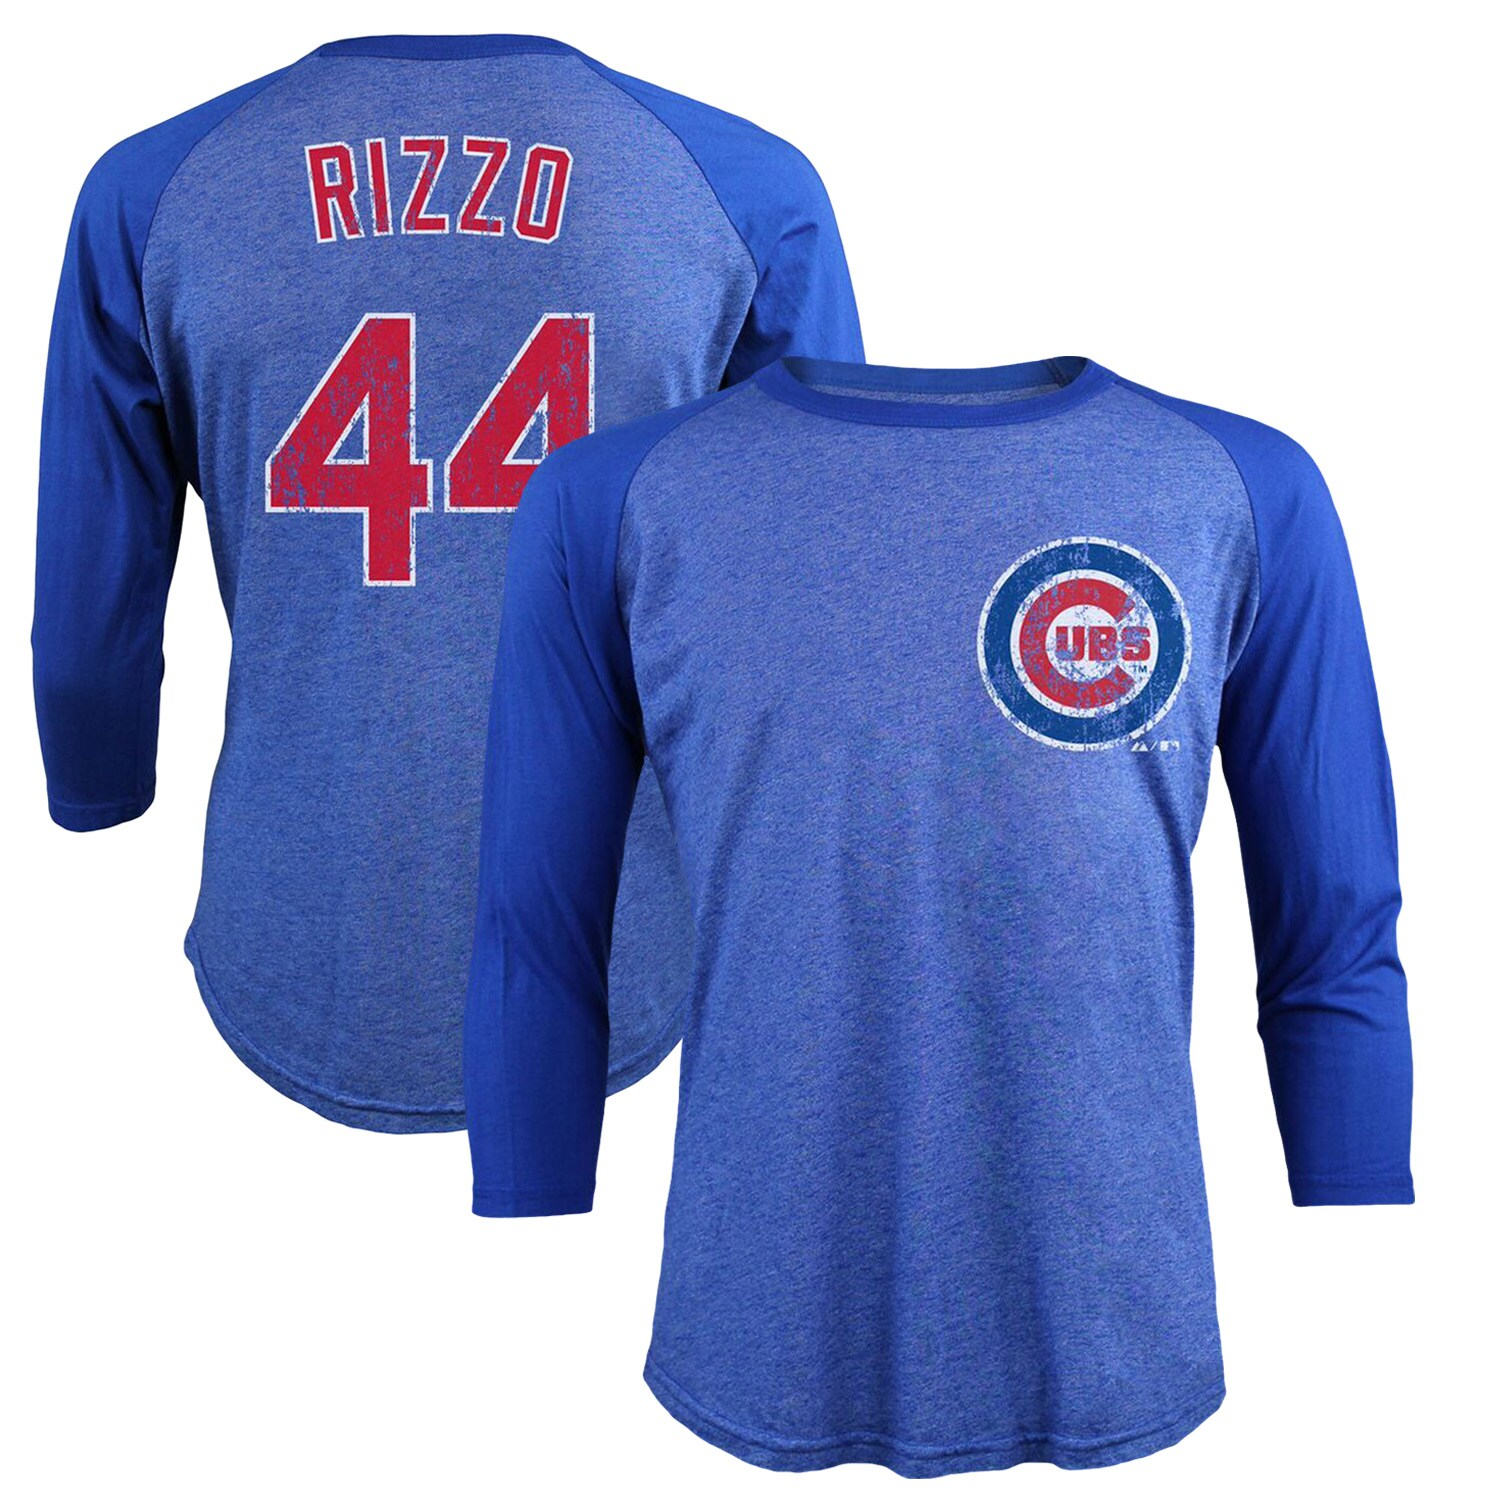 Anthony Rizzo Chicago Cubs Majestic Threads Tri-Blend 3/4-Sleeve Raglan Name & Number T-Shirt - Royal